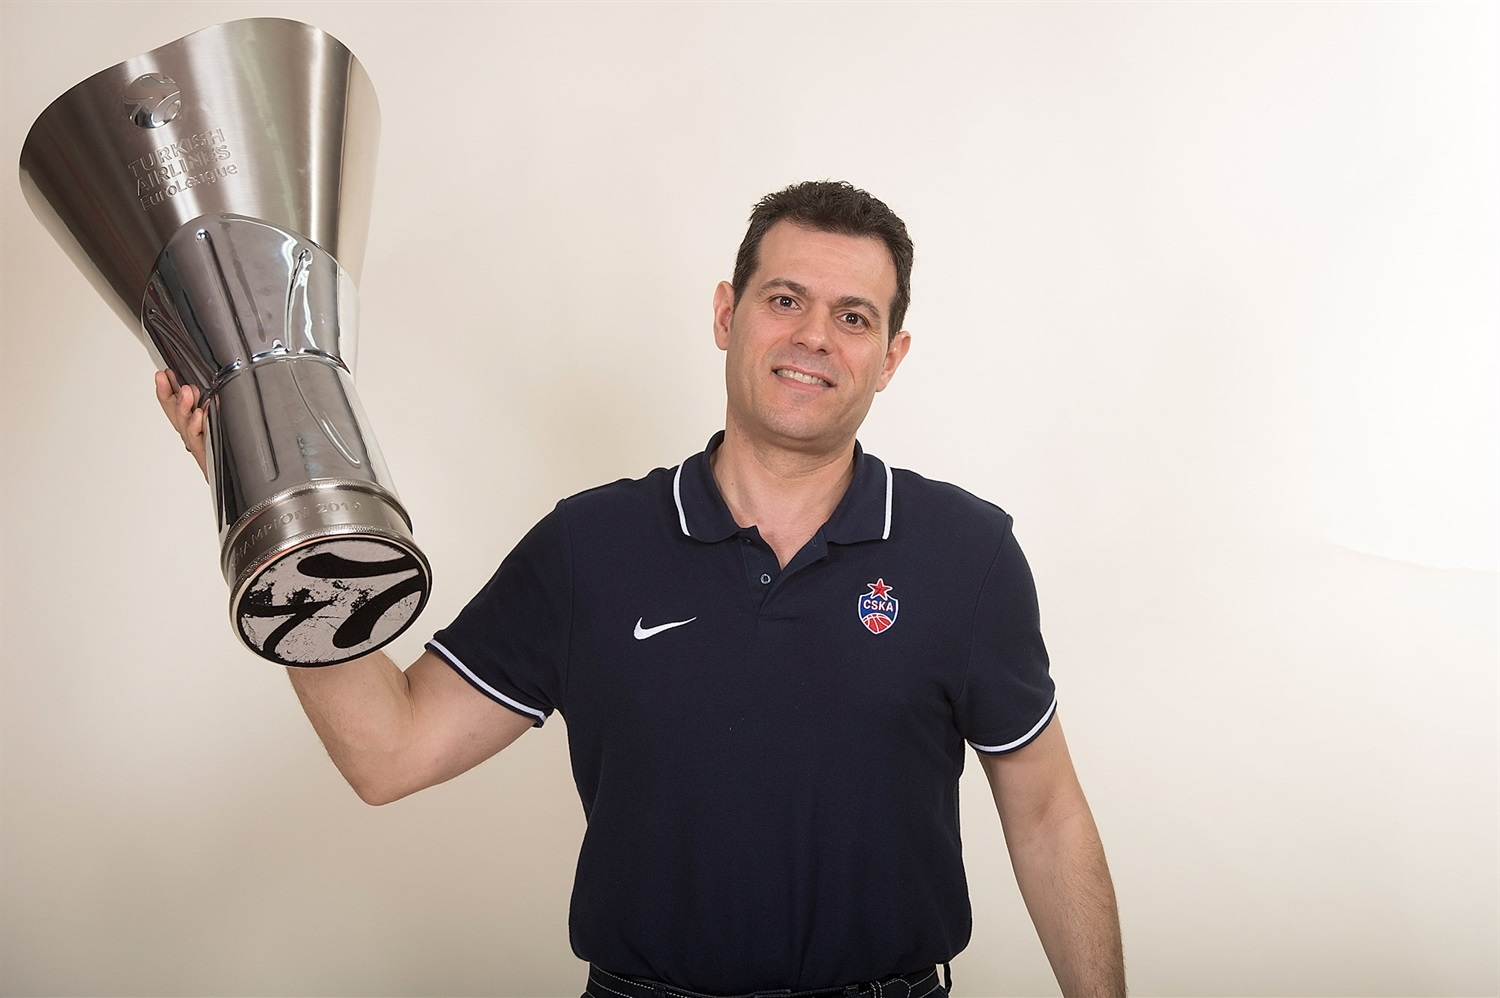 Dimitris Itoudis - CSKA trophy photo shoot - Final Four Vitoria-Gasteiz 2019 - EB18